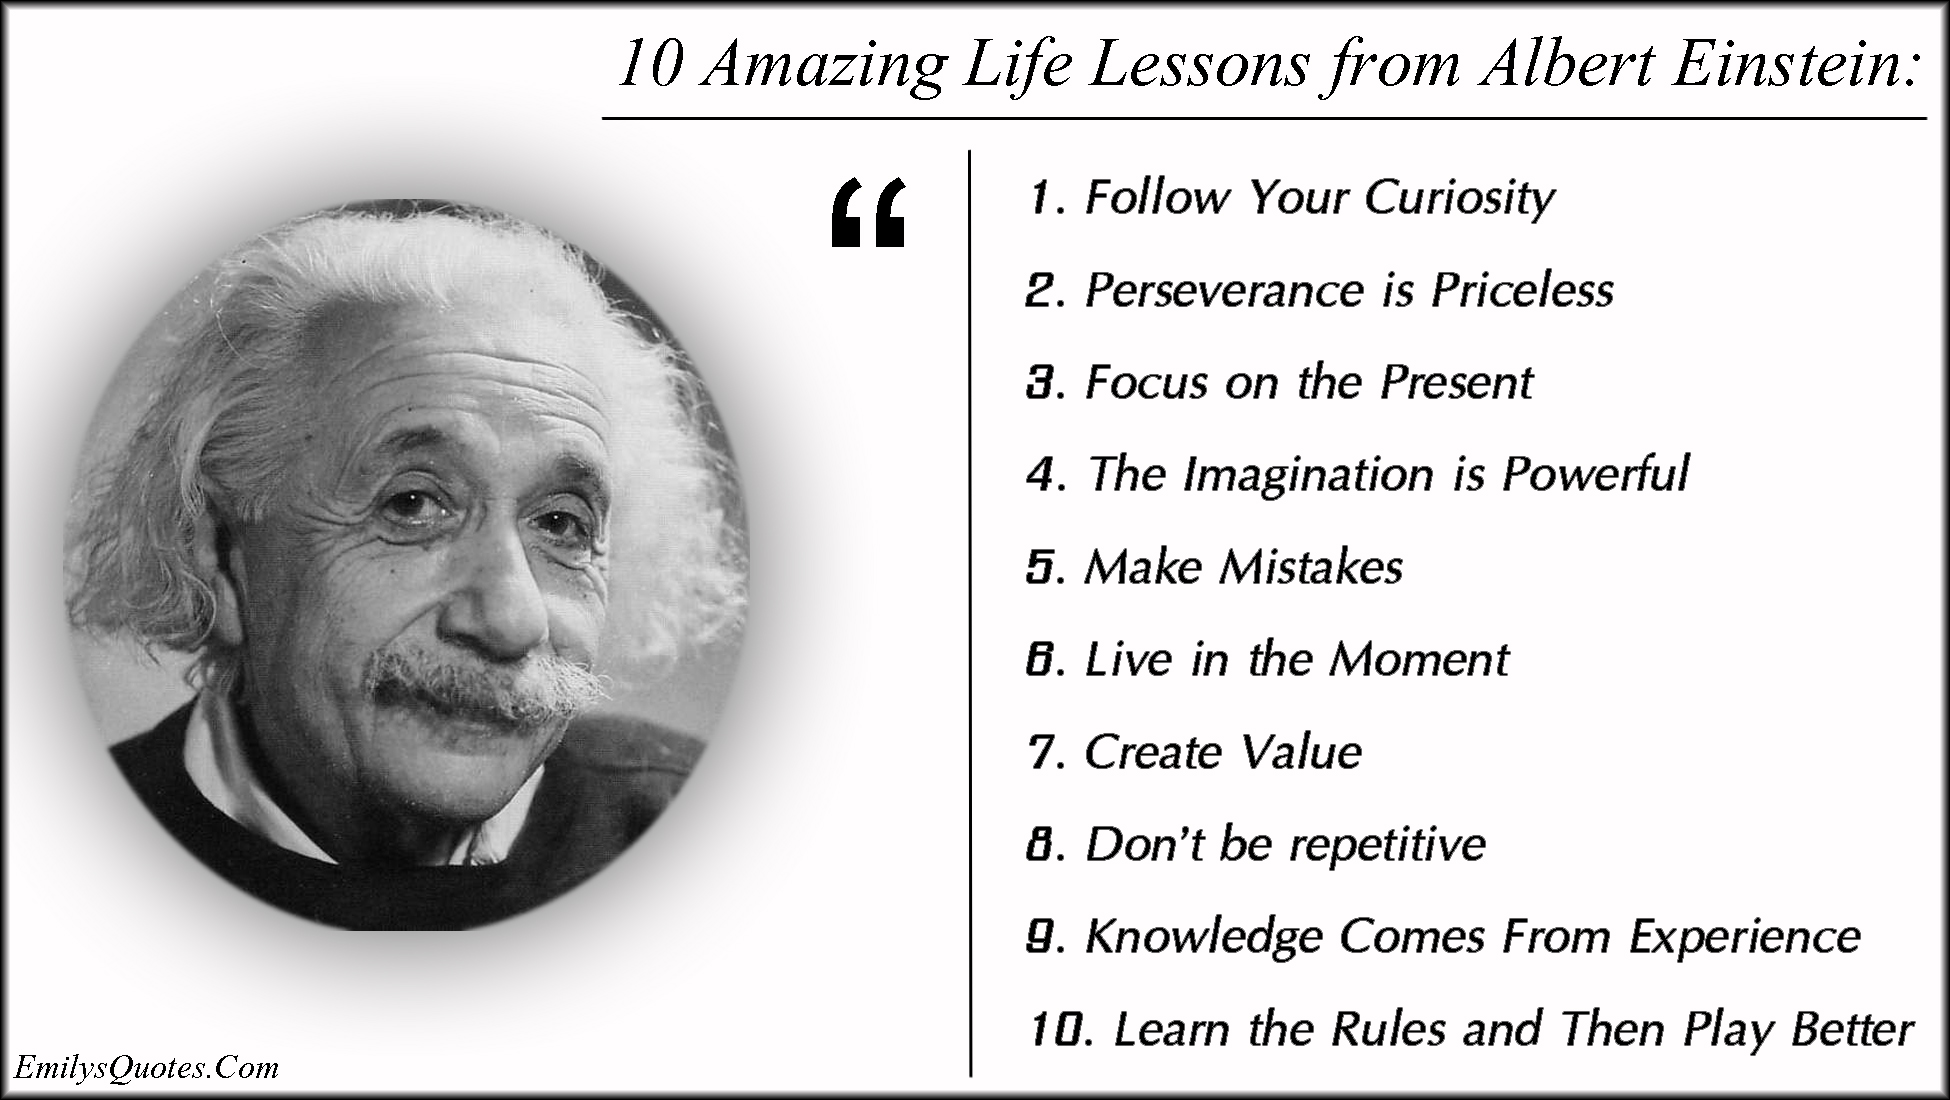 amazing life lessons from albert einstein follow your com life lessons advice wisdom intelligent albert einstein ldquo